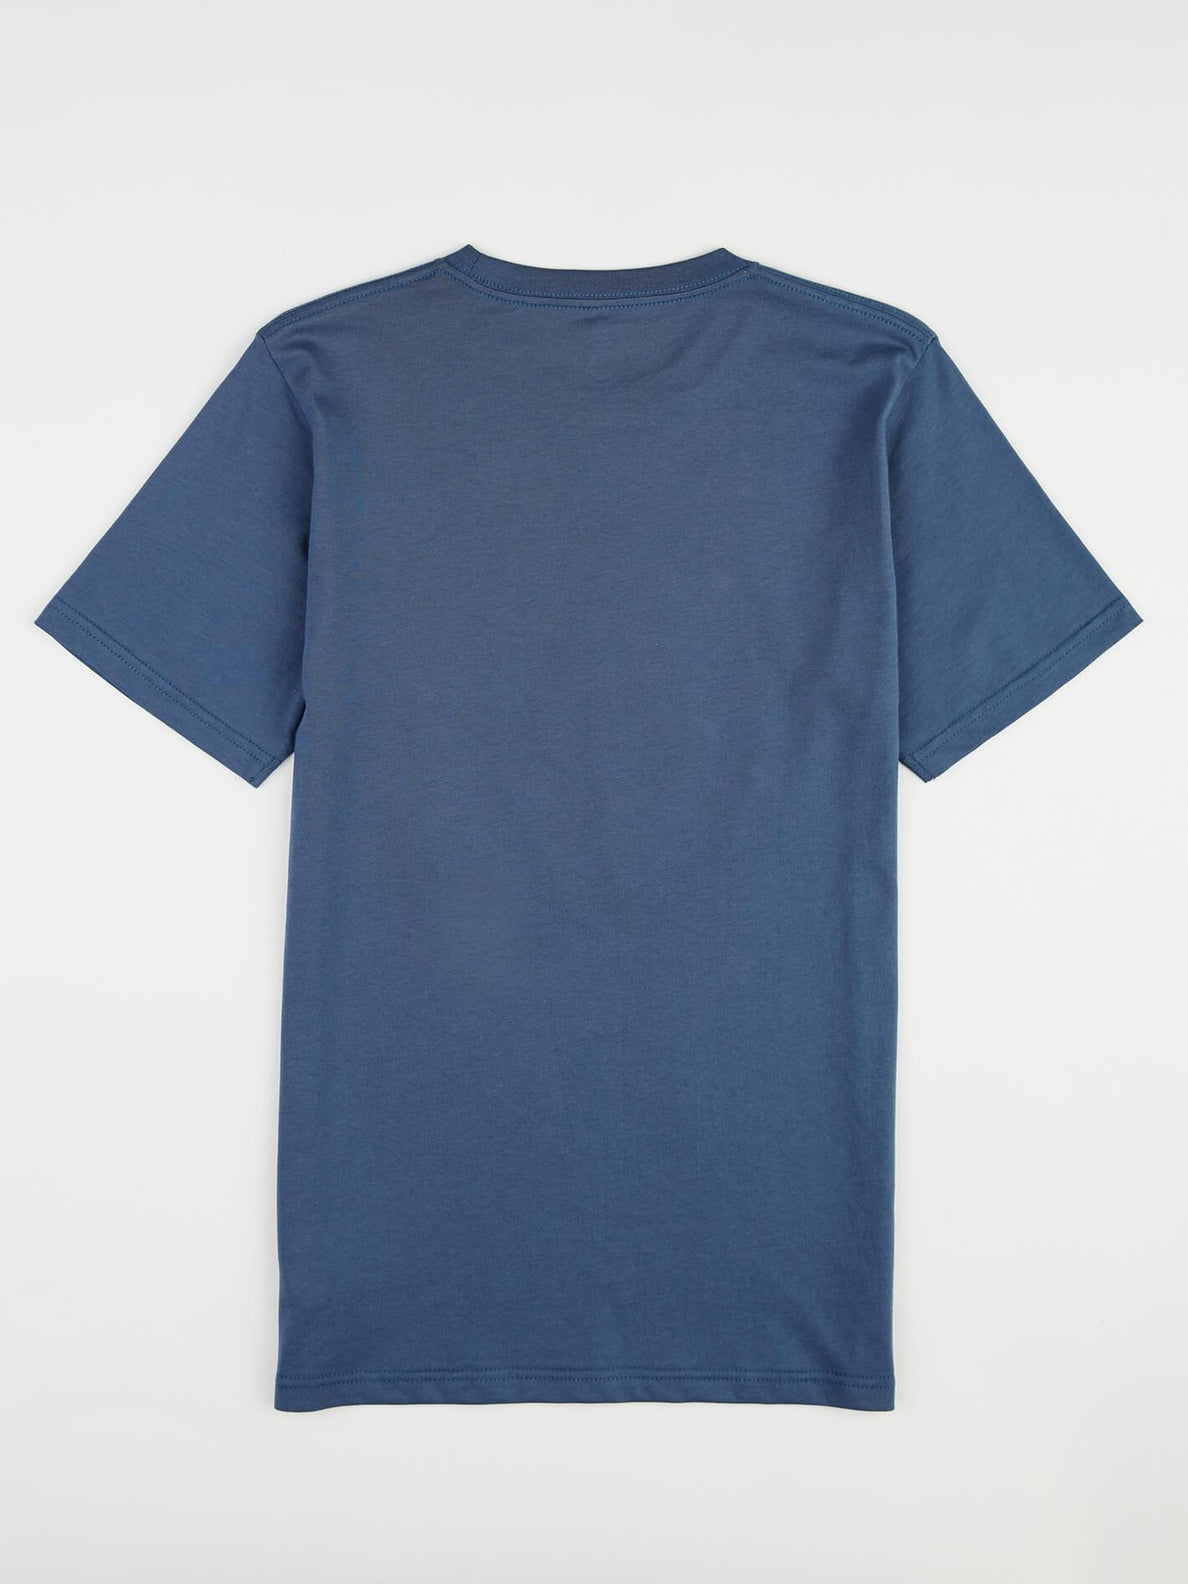 Big Boys Classic Stone Tee In Deep Blue, Back View